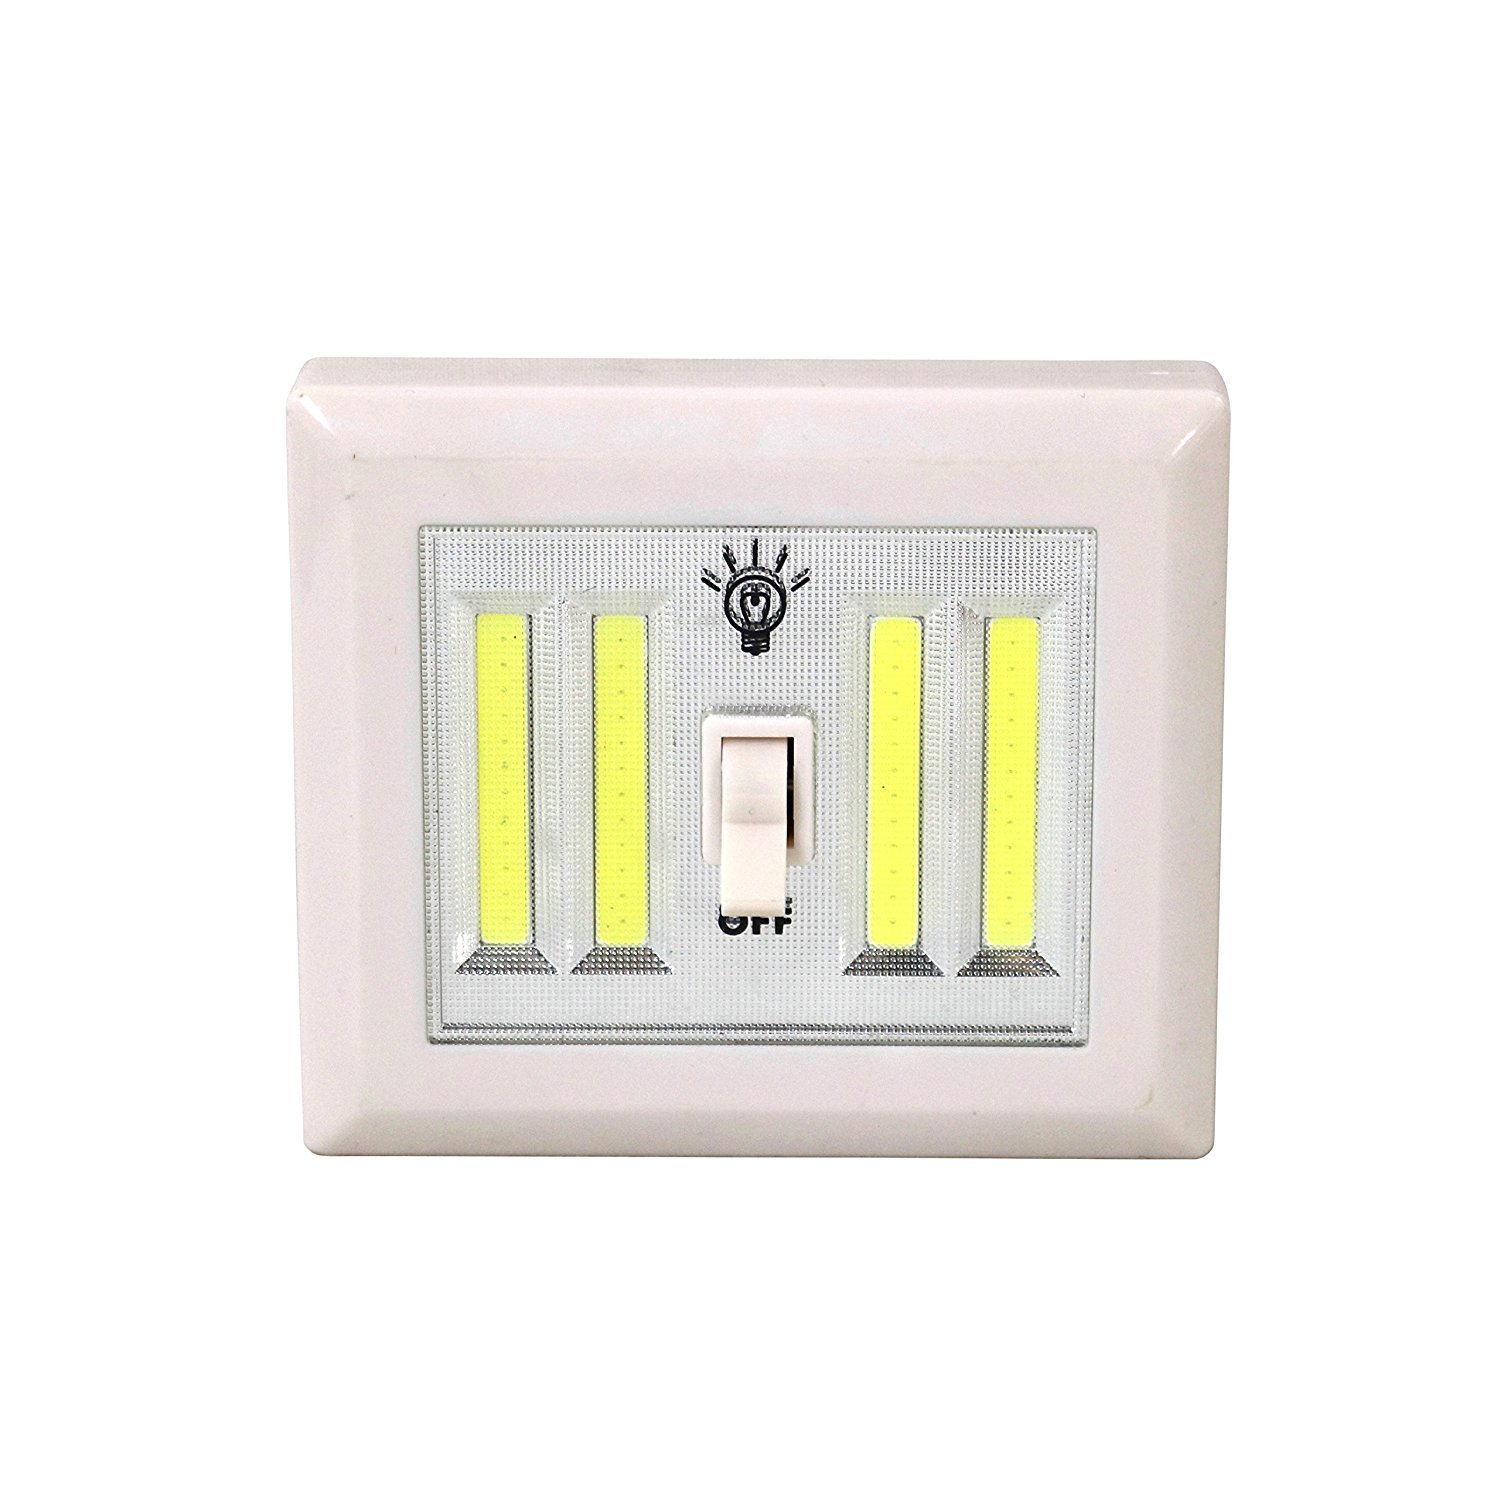 COB LED Ultra Bright LED Night Light with Switch - BATTERIES INCLUDED!